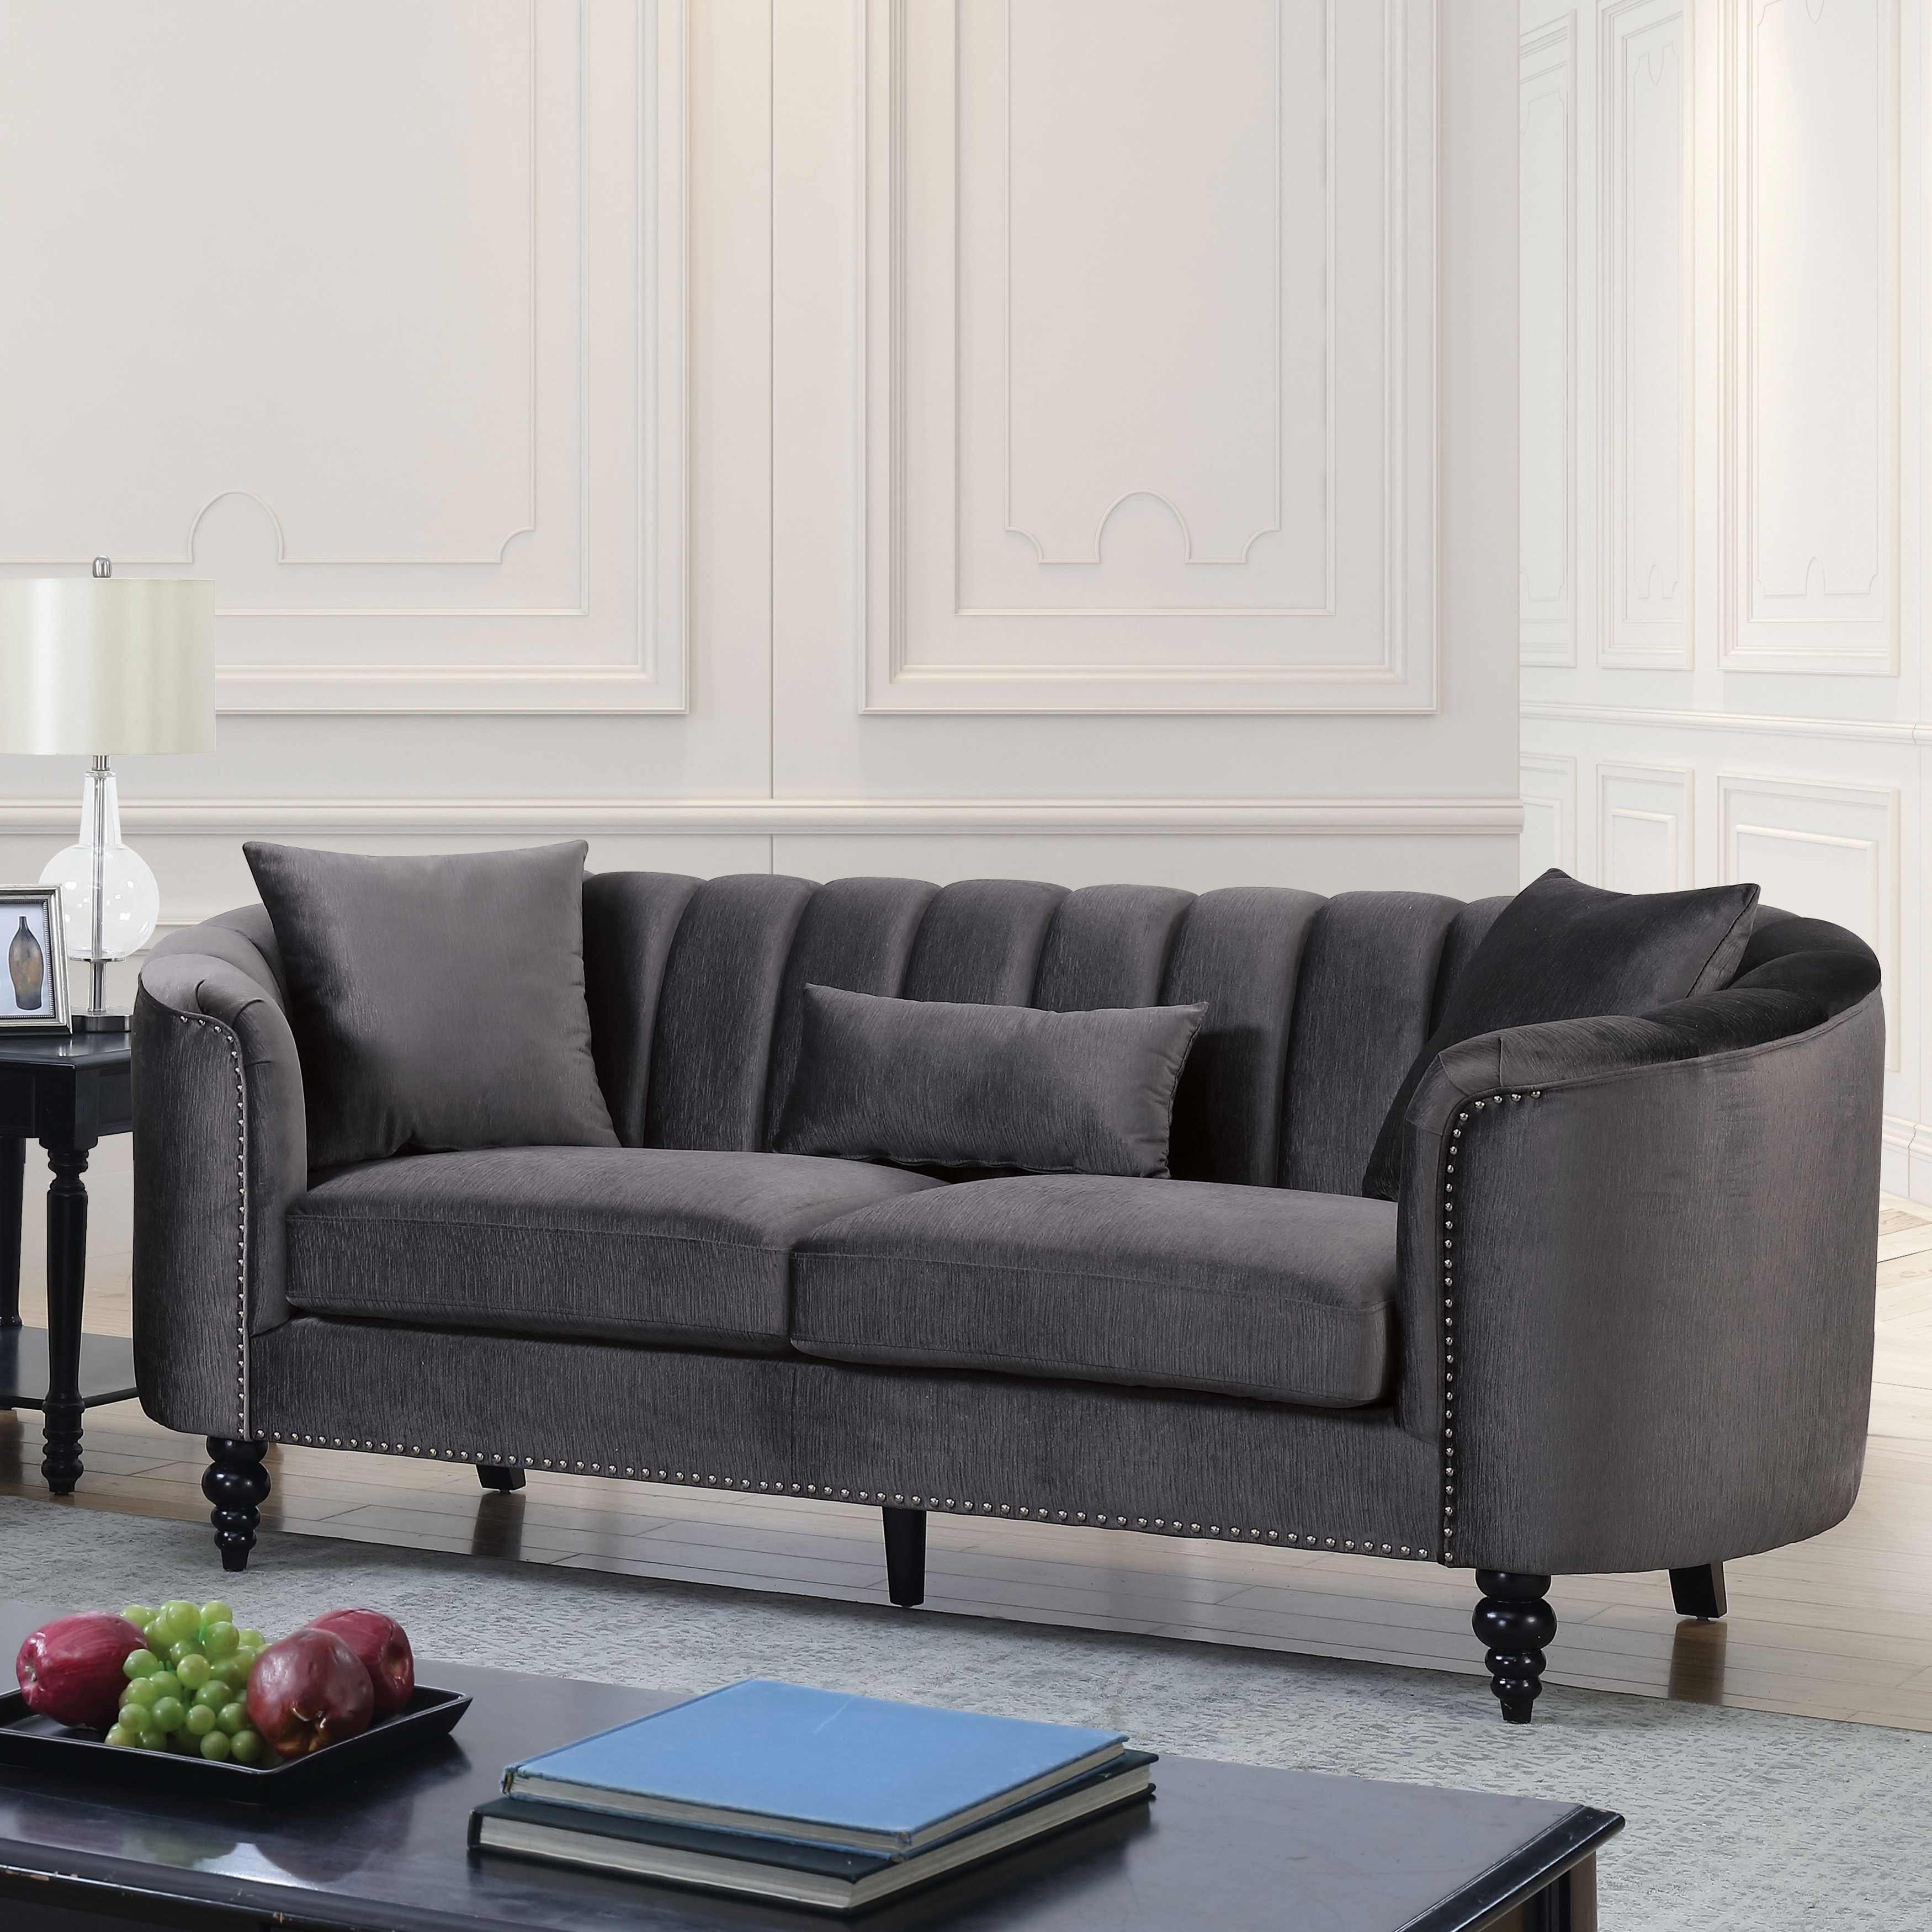 Incredible Furniture Of America Tessa Tufted Velvet Like Sofa Caraccident5 Cool Chair Designs And Ideas Caraccident5Info